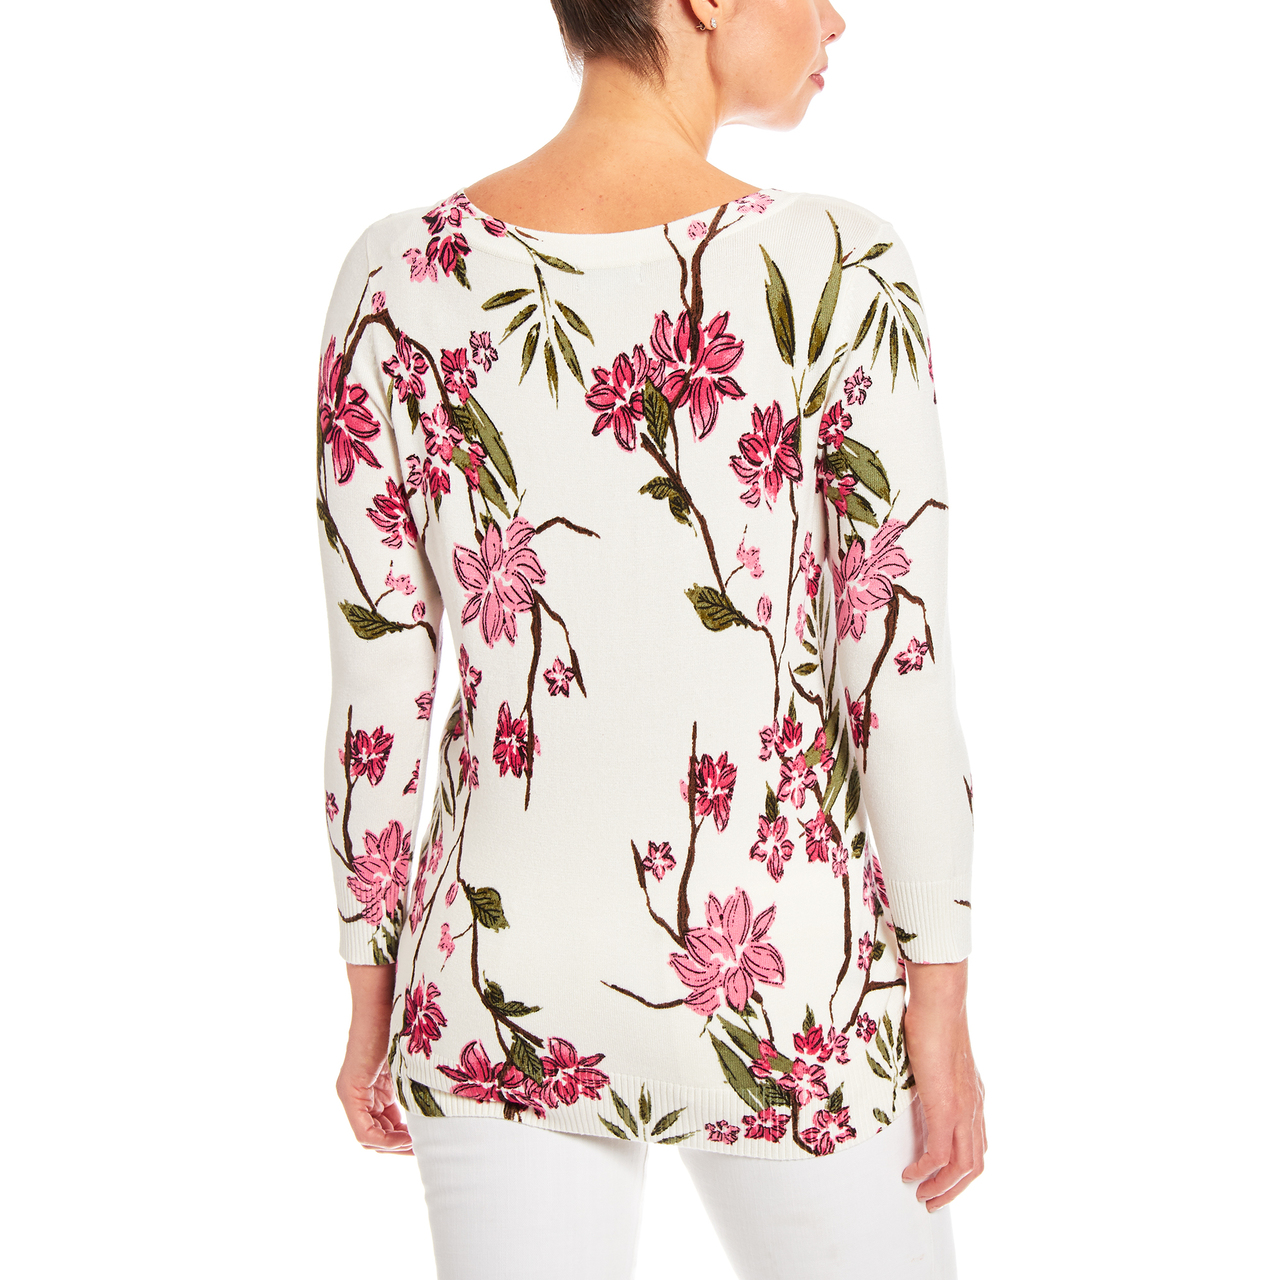 3/4 Sleeve Cherry Blossom Printed Sweater